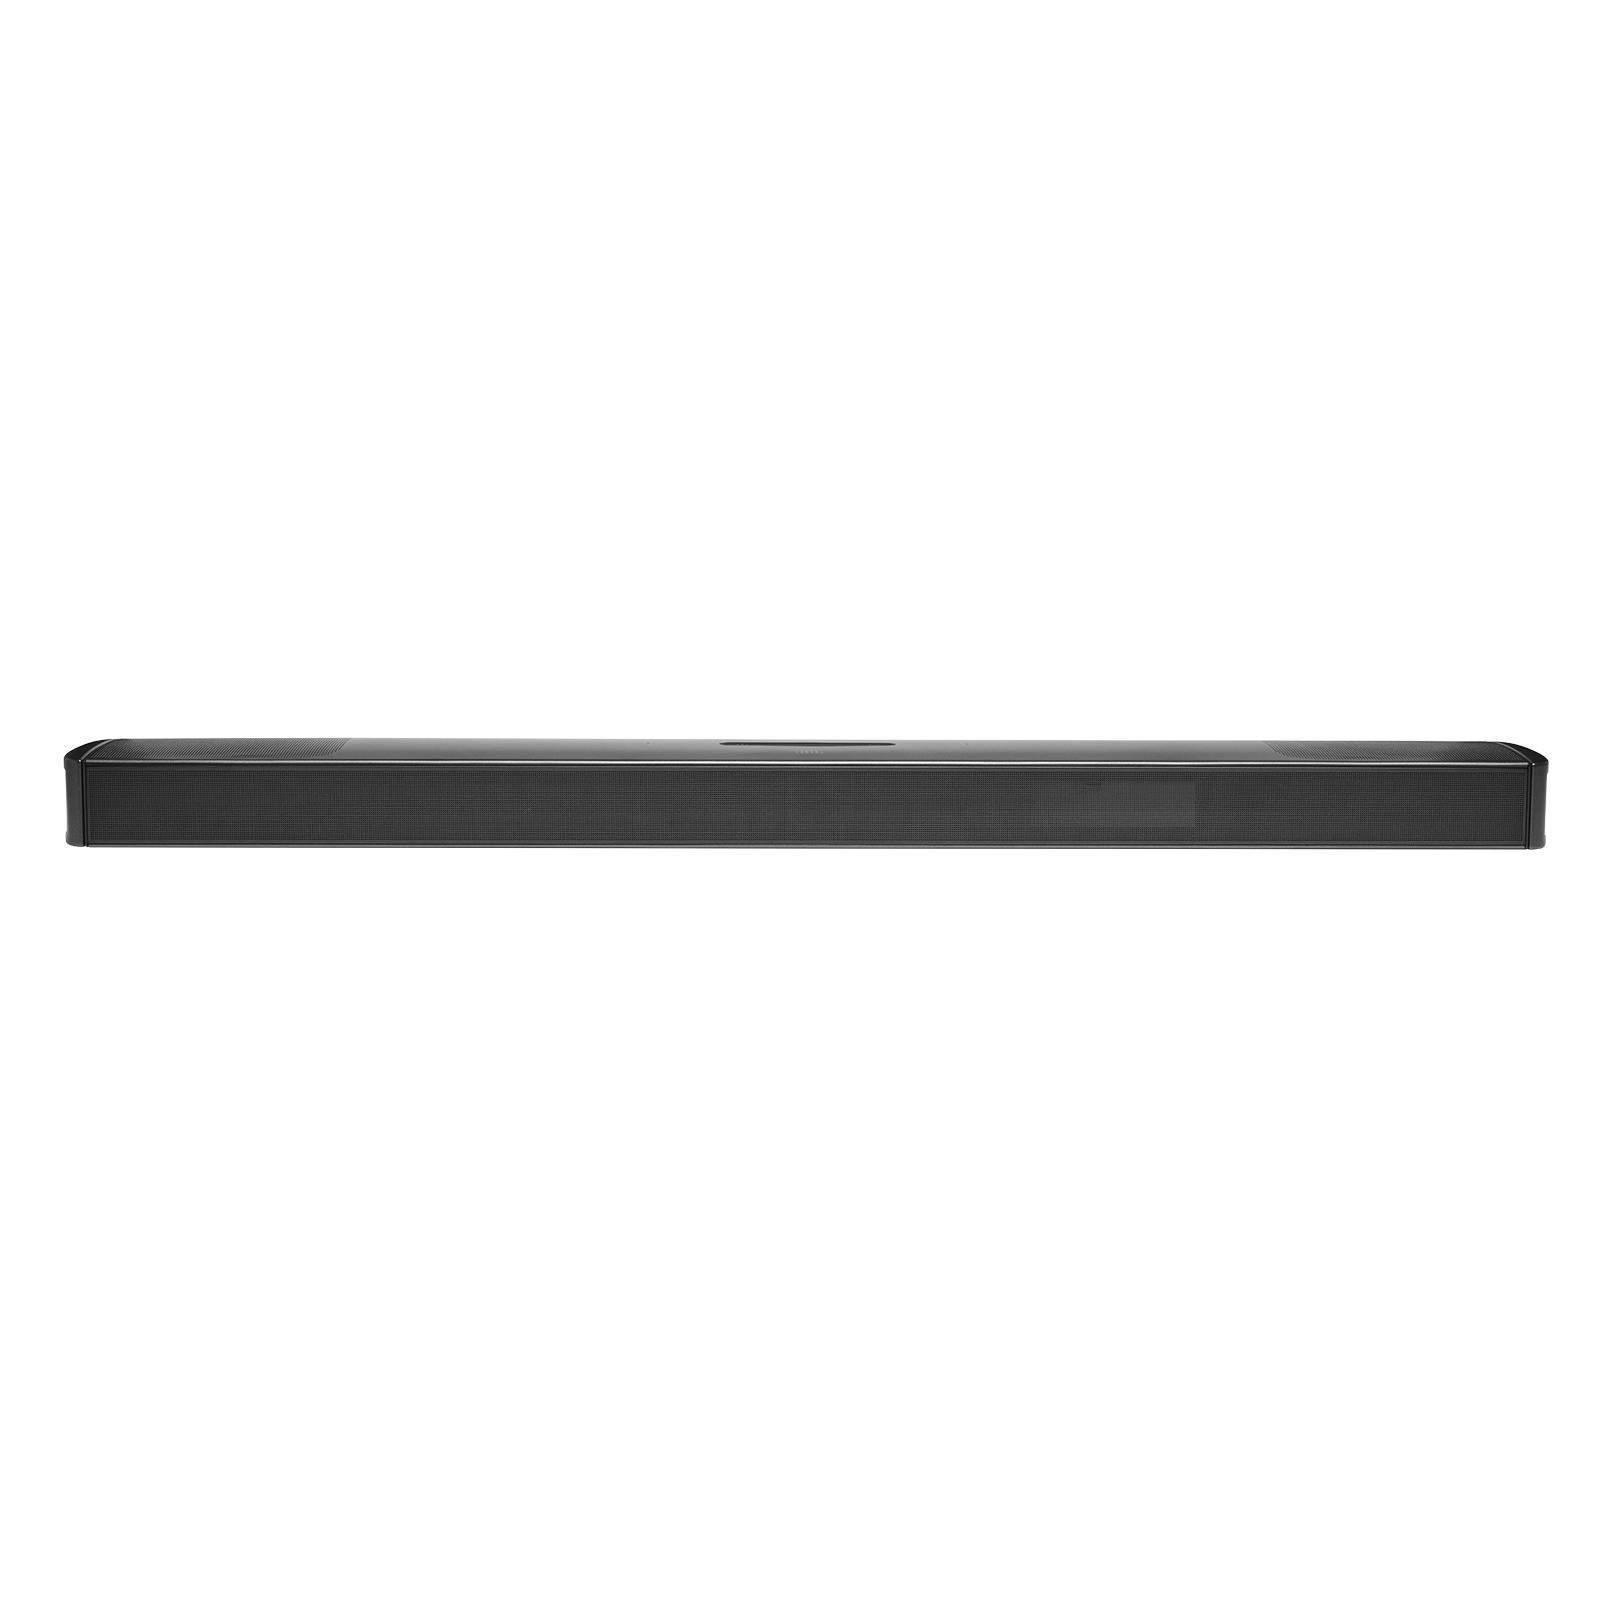 JBL BAR 9.1 True Wireless Surround with Dolby Atmos® - Black - Front